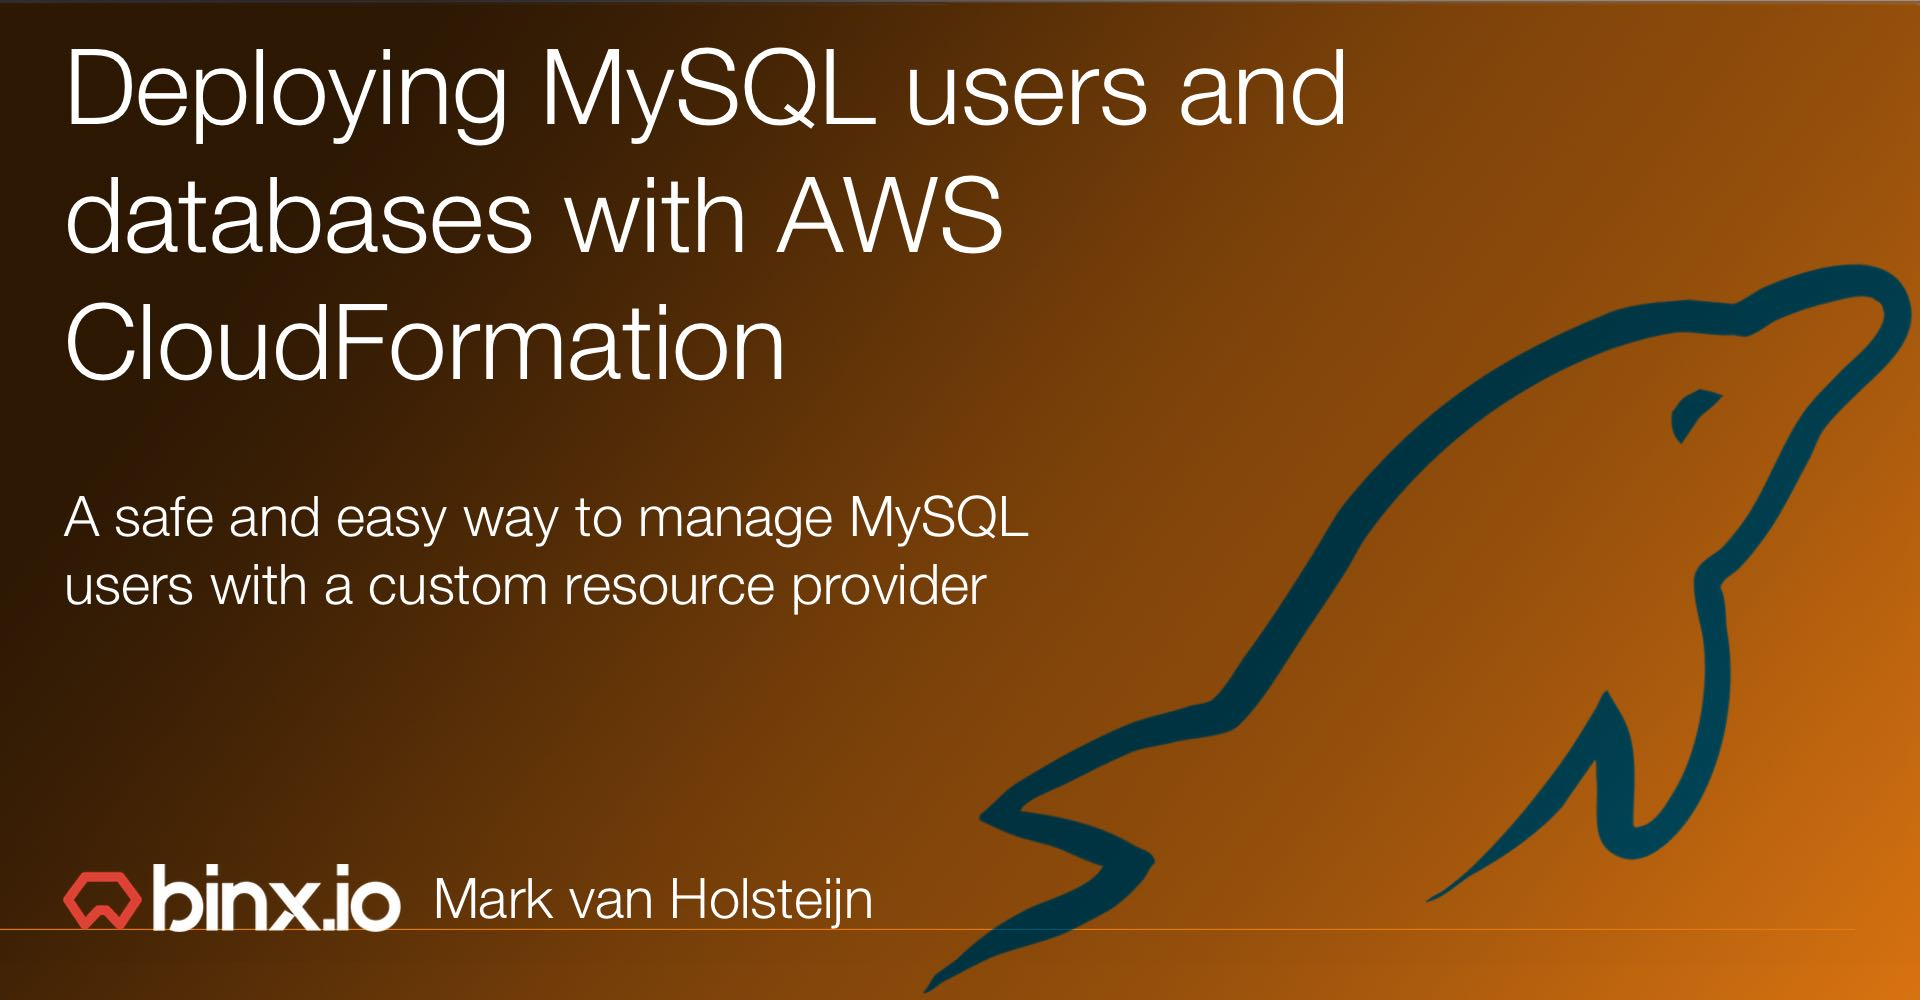 Deploying MySQL users and databases with AWS CloudFormation